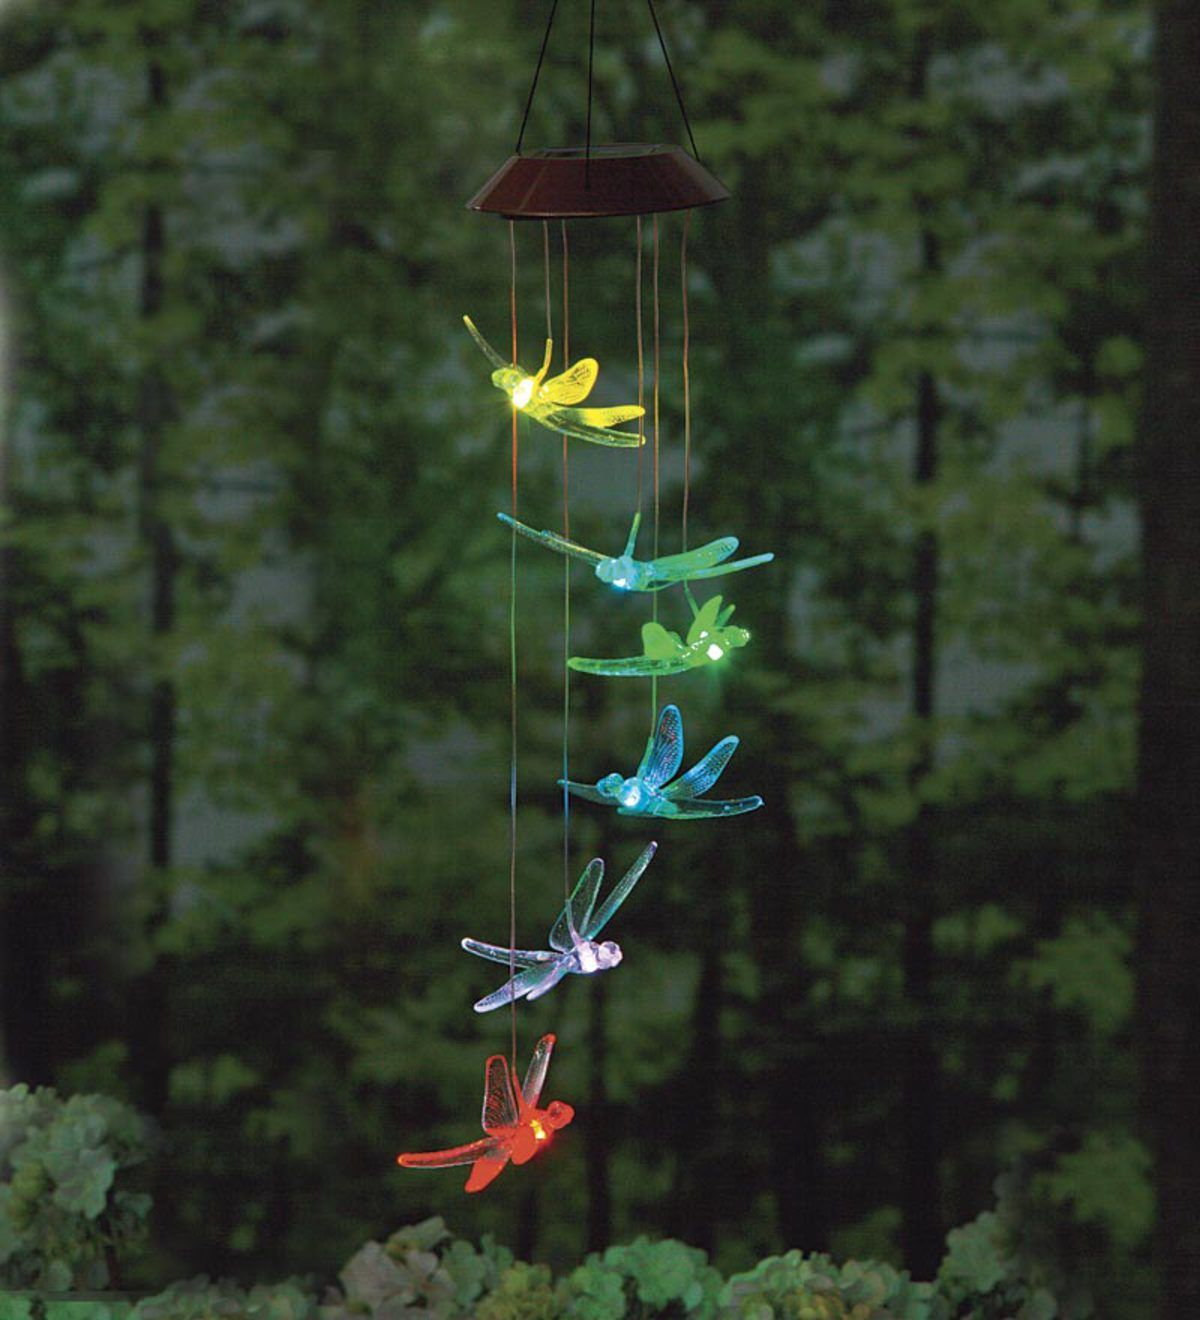 Let our enchanting Dragonfly Solar Mobile brighten your